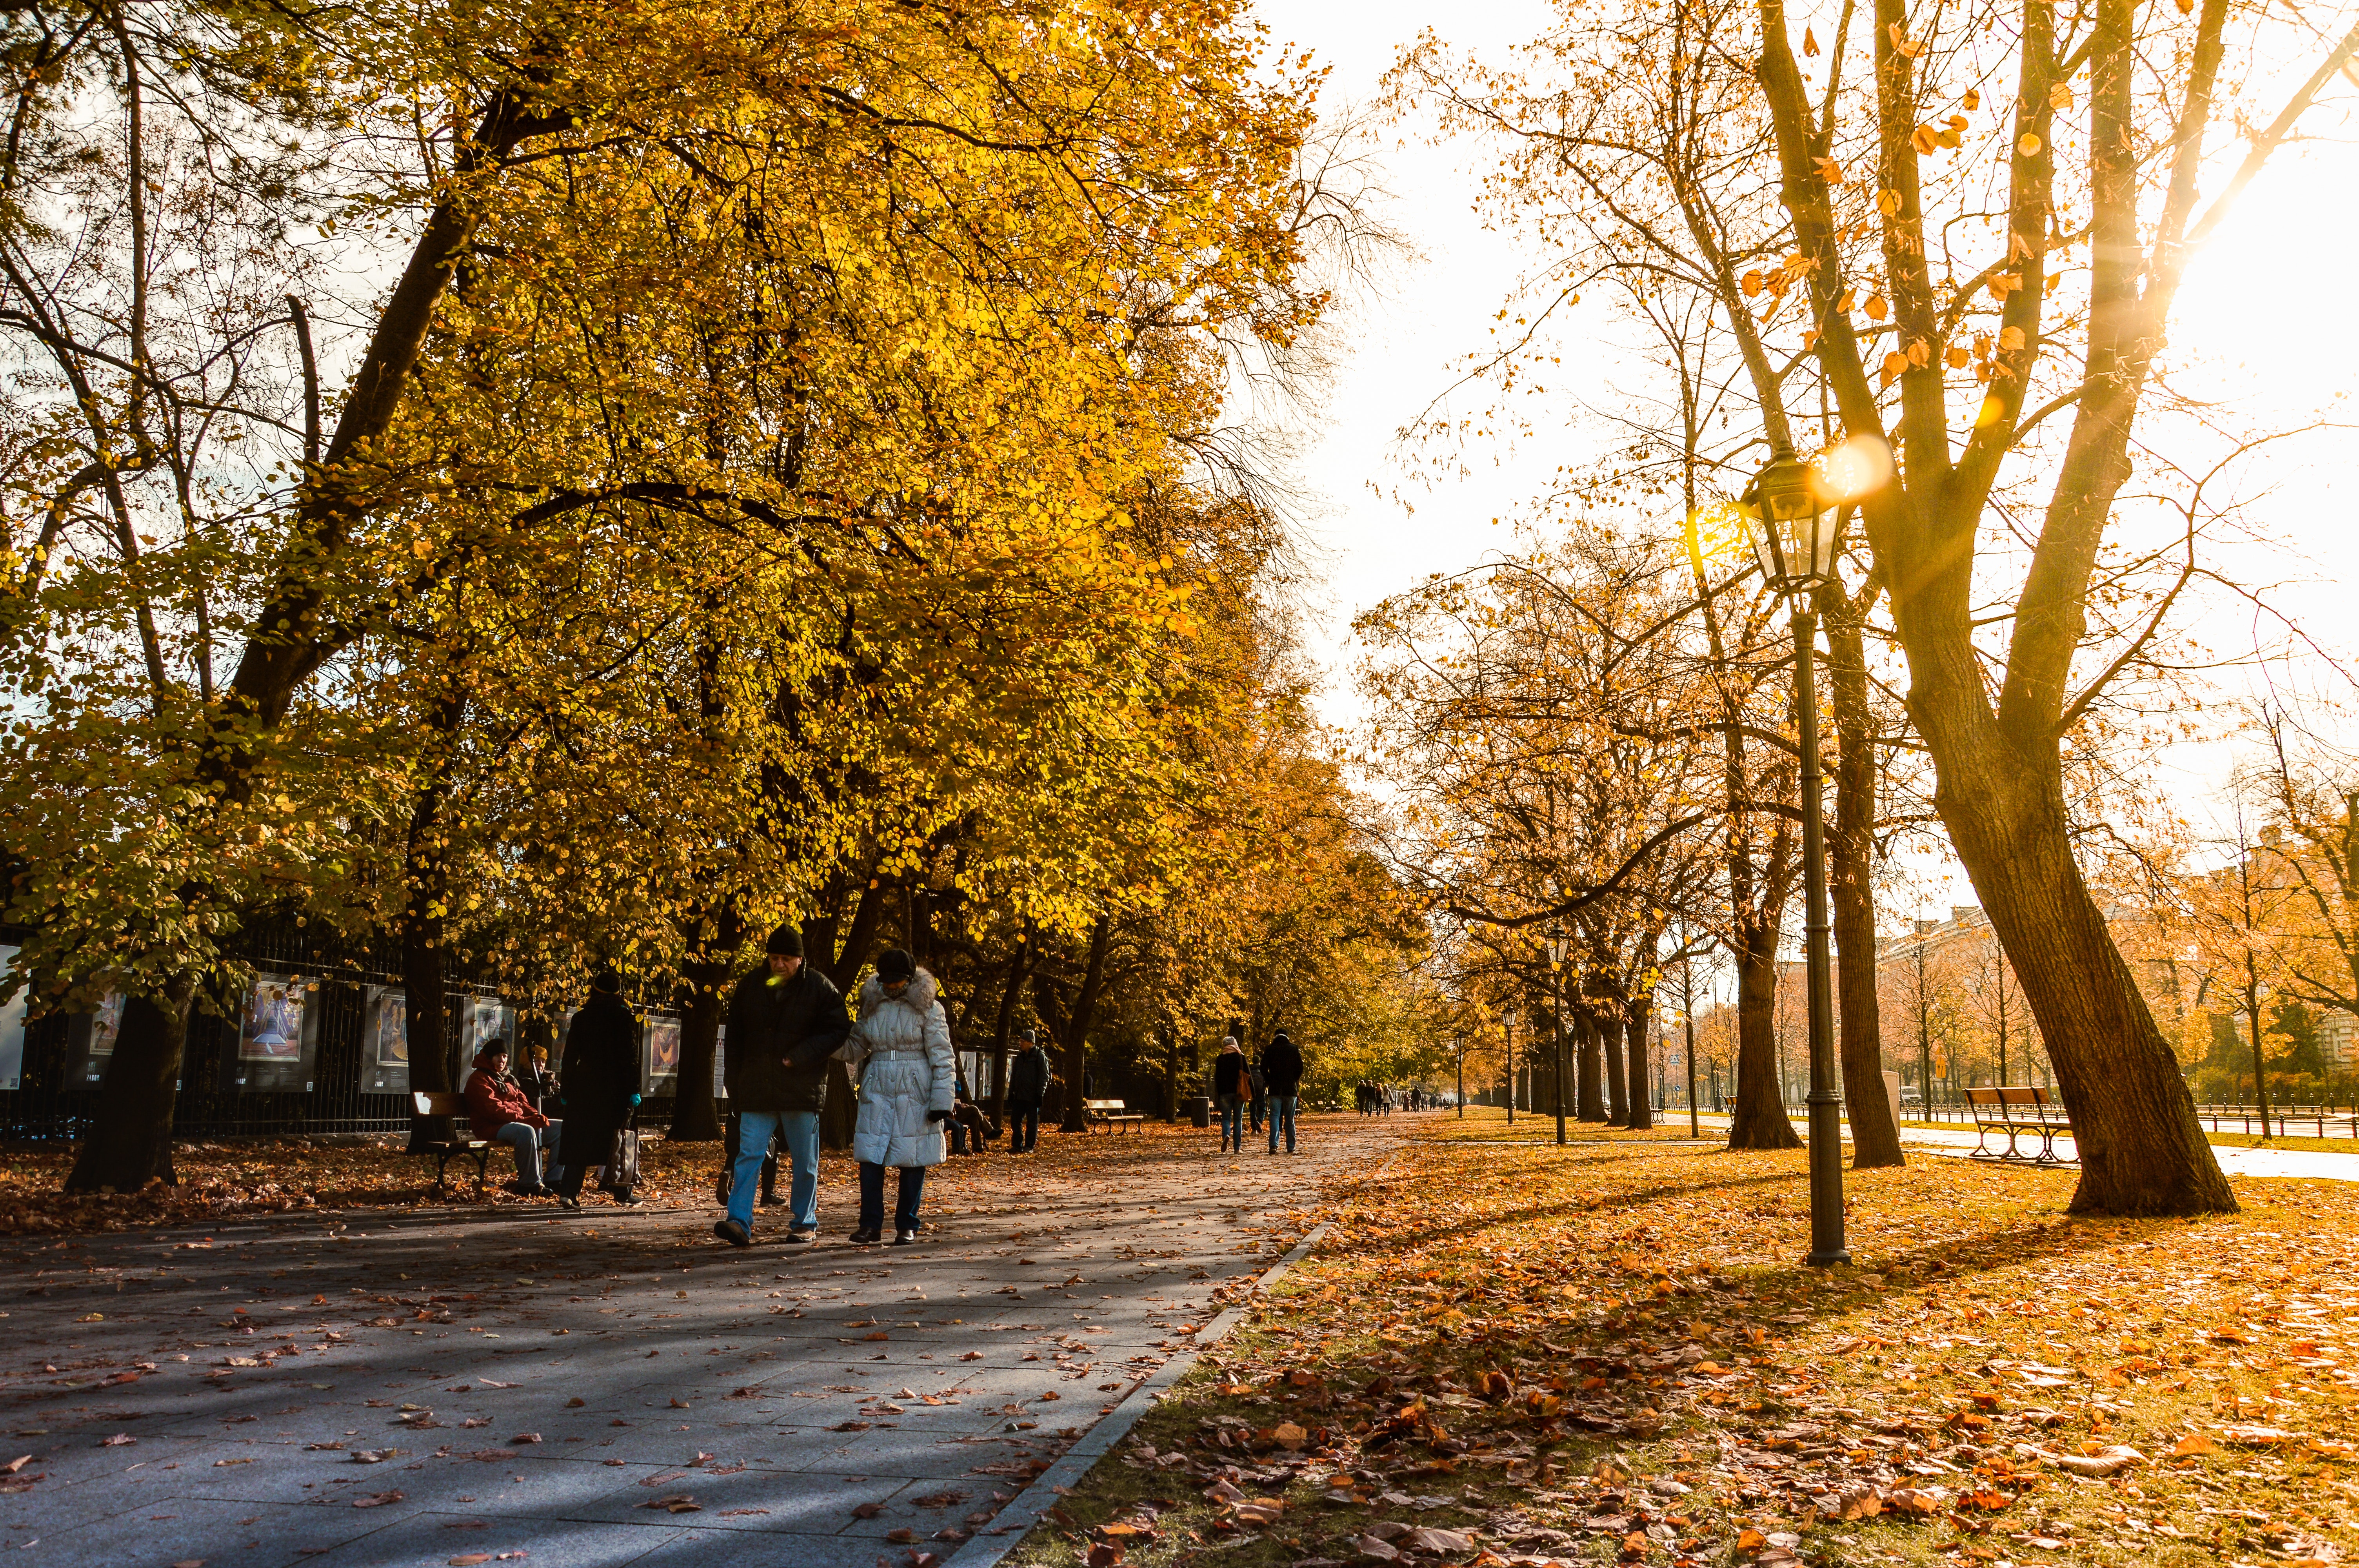 People Walking on Gray Concrete Pathway Between Trees during Daytime, Autumn, Pavement, Way, Warsaw, HQ Photo